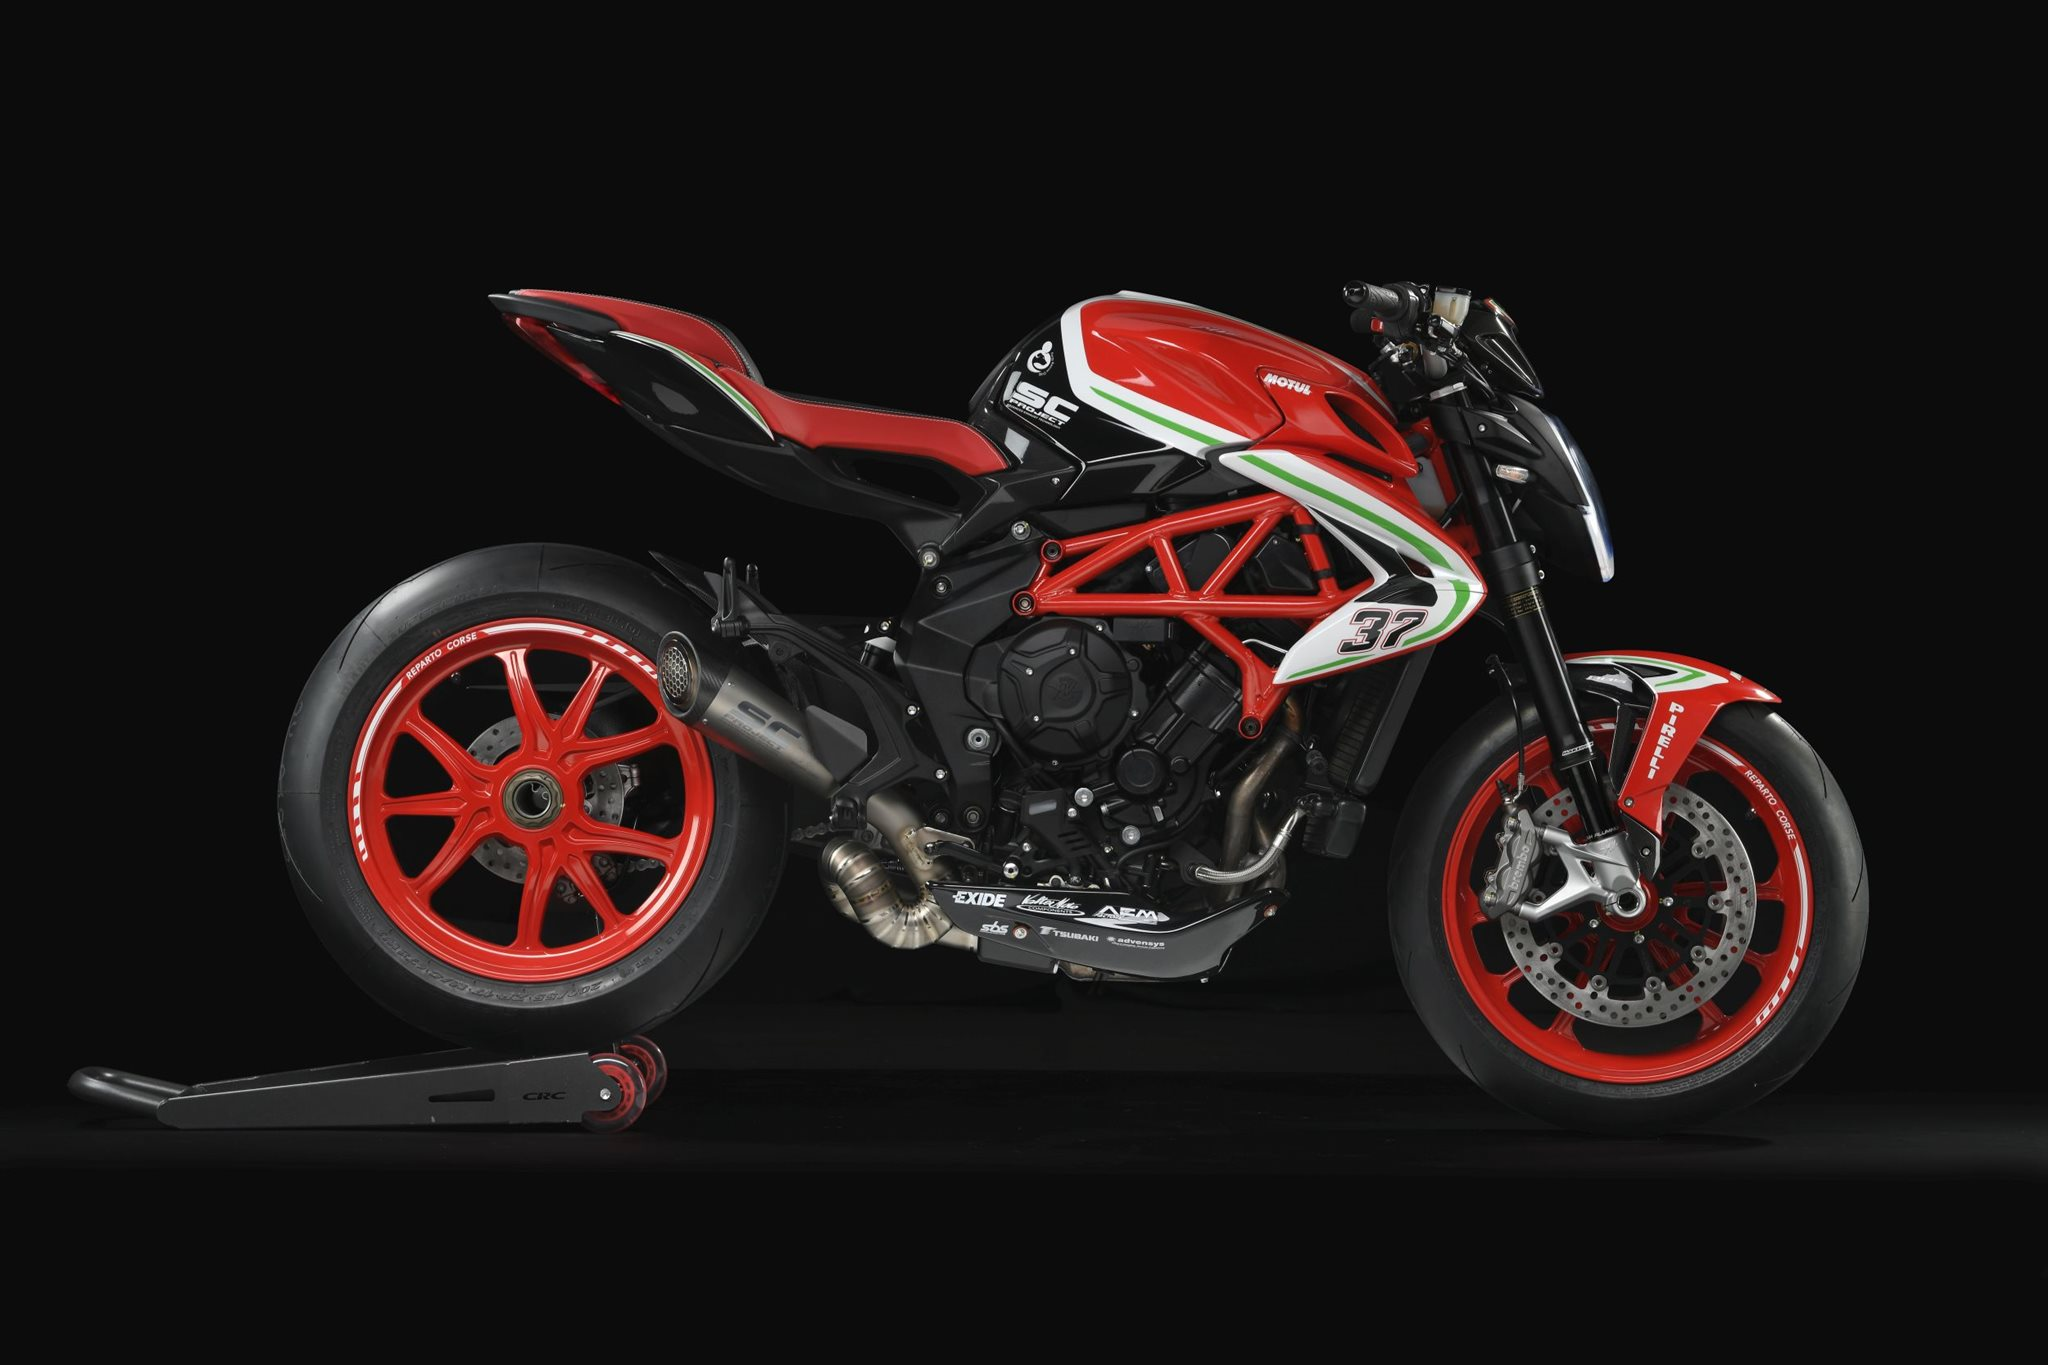 2019 MV Agusta Brutale 800 RC Guide • Total Motorcycle